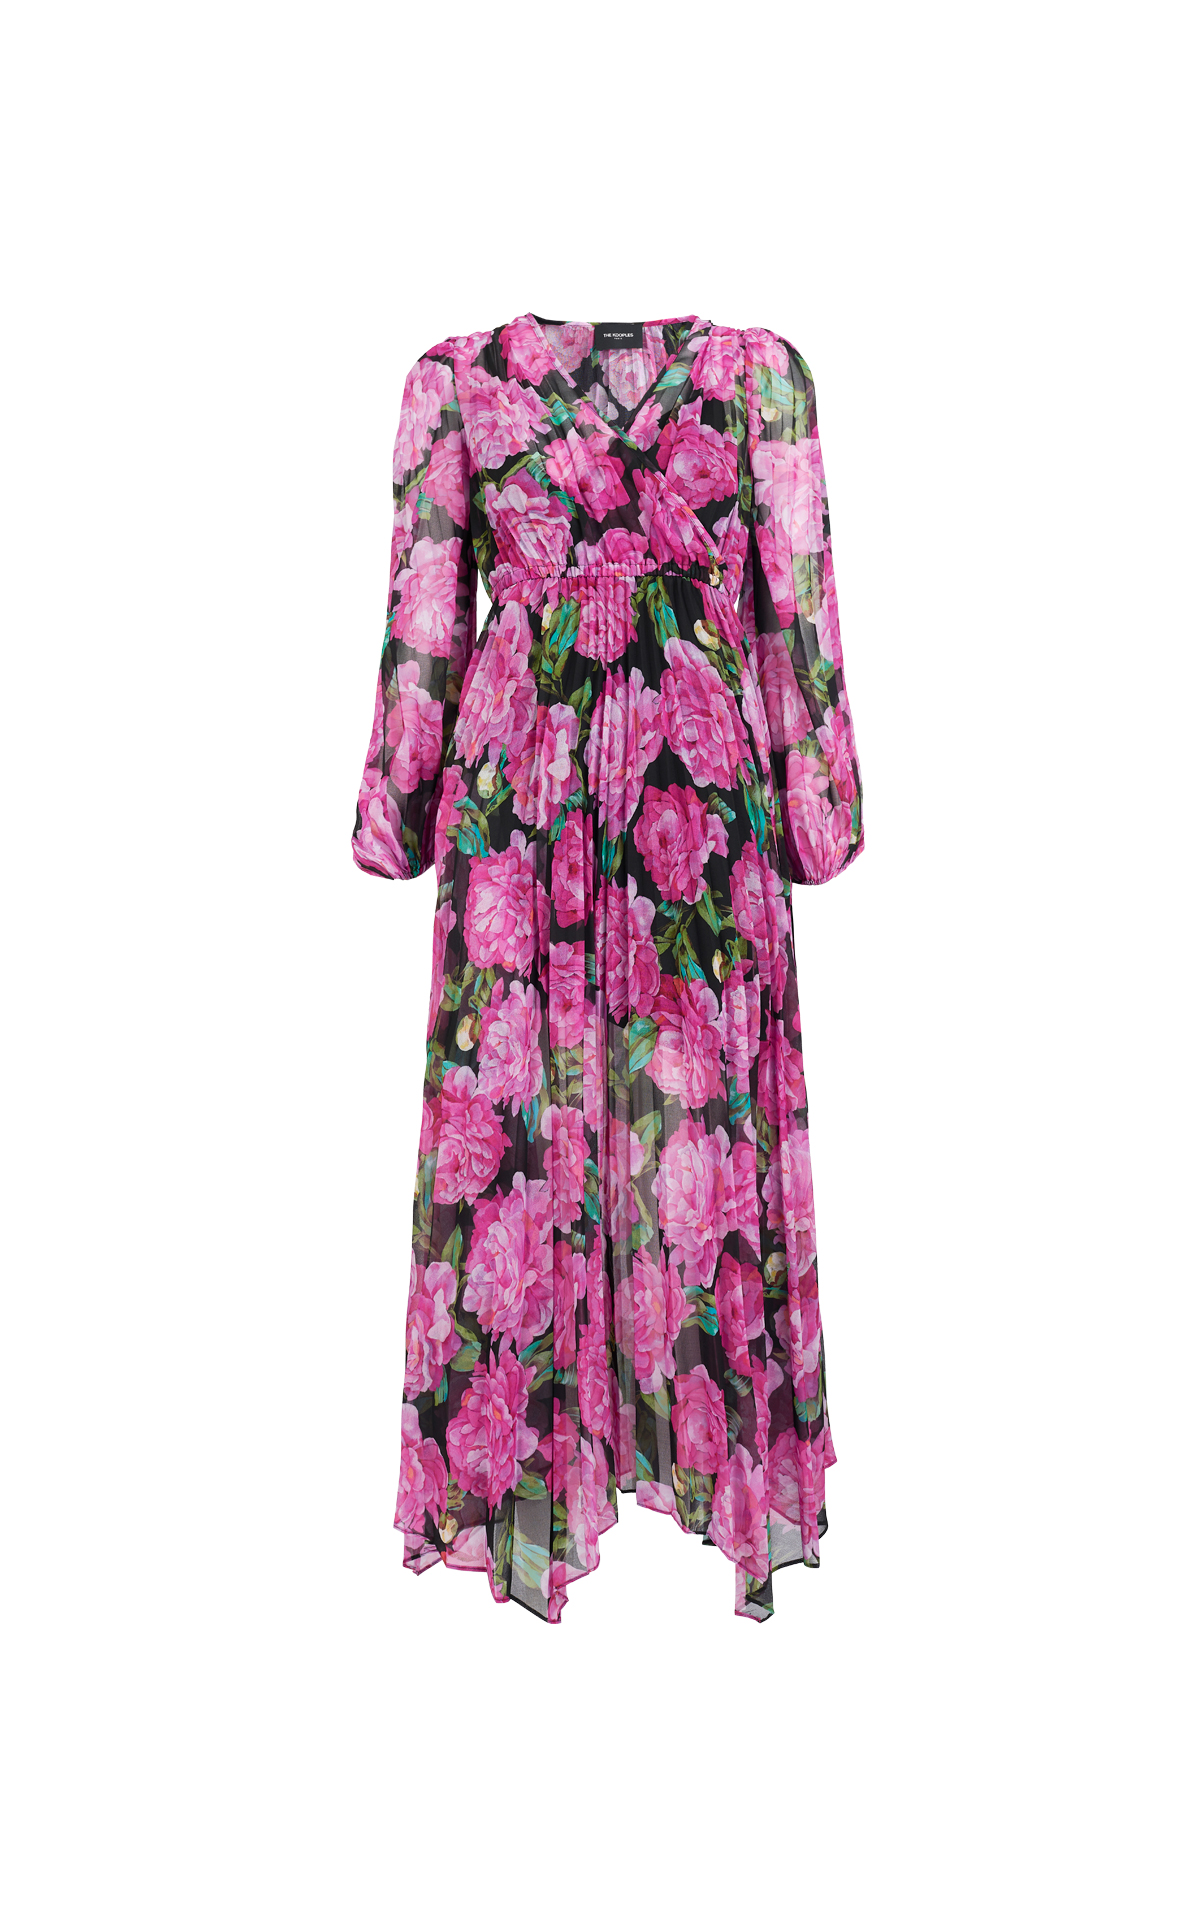 Vestido rosa flores The Kooples